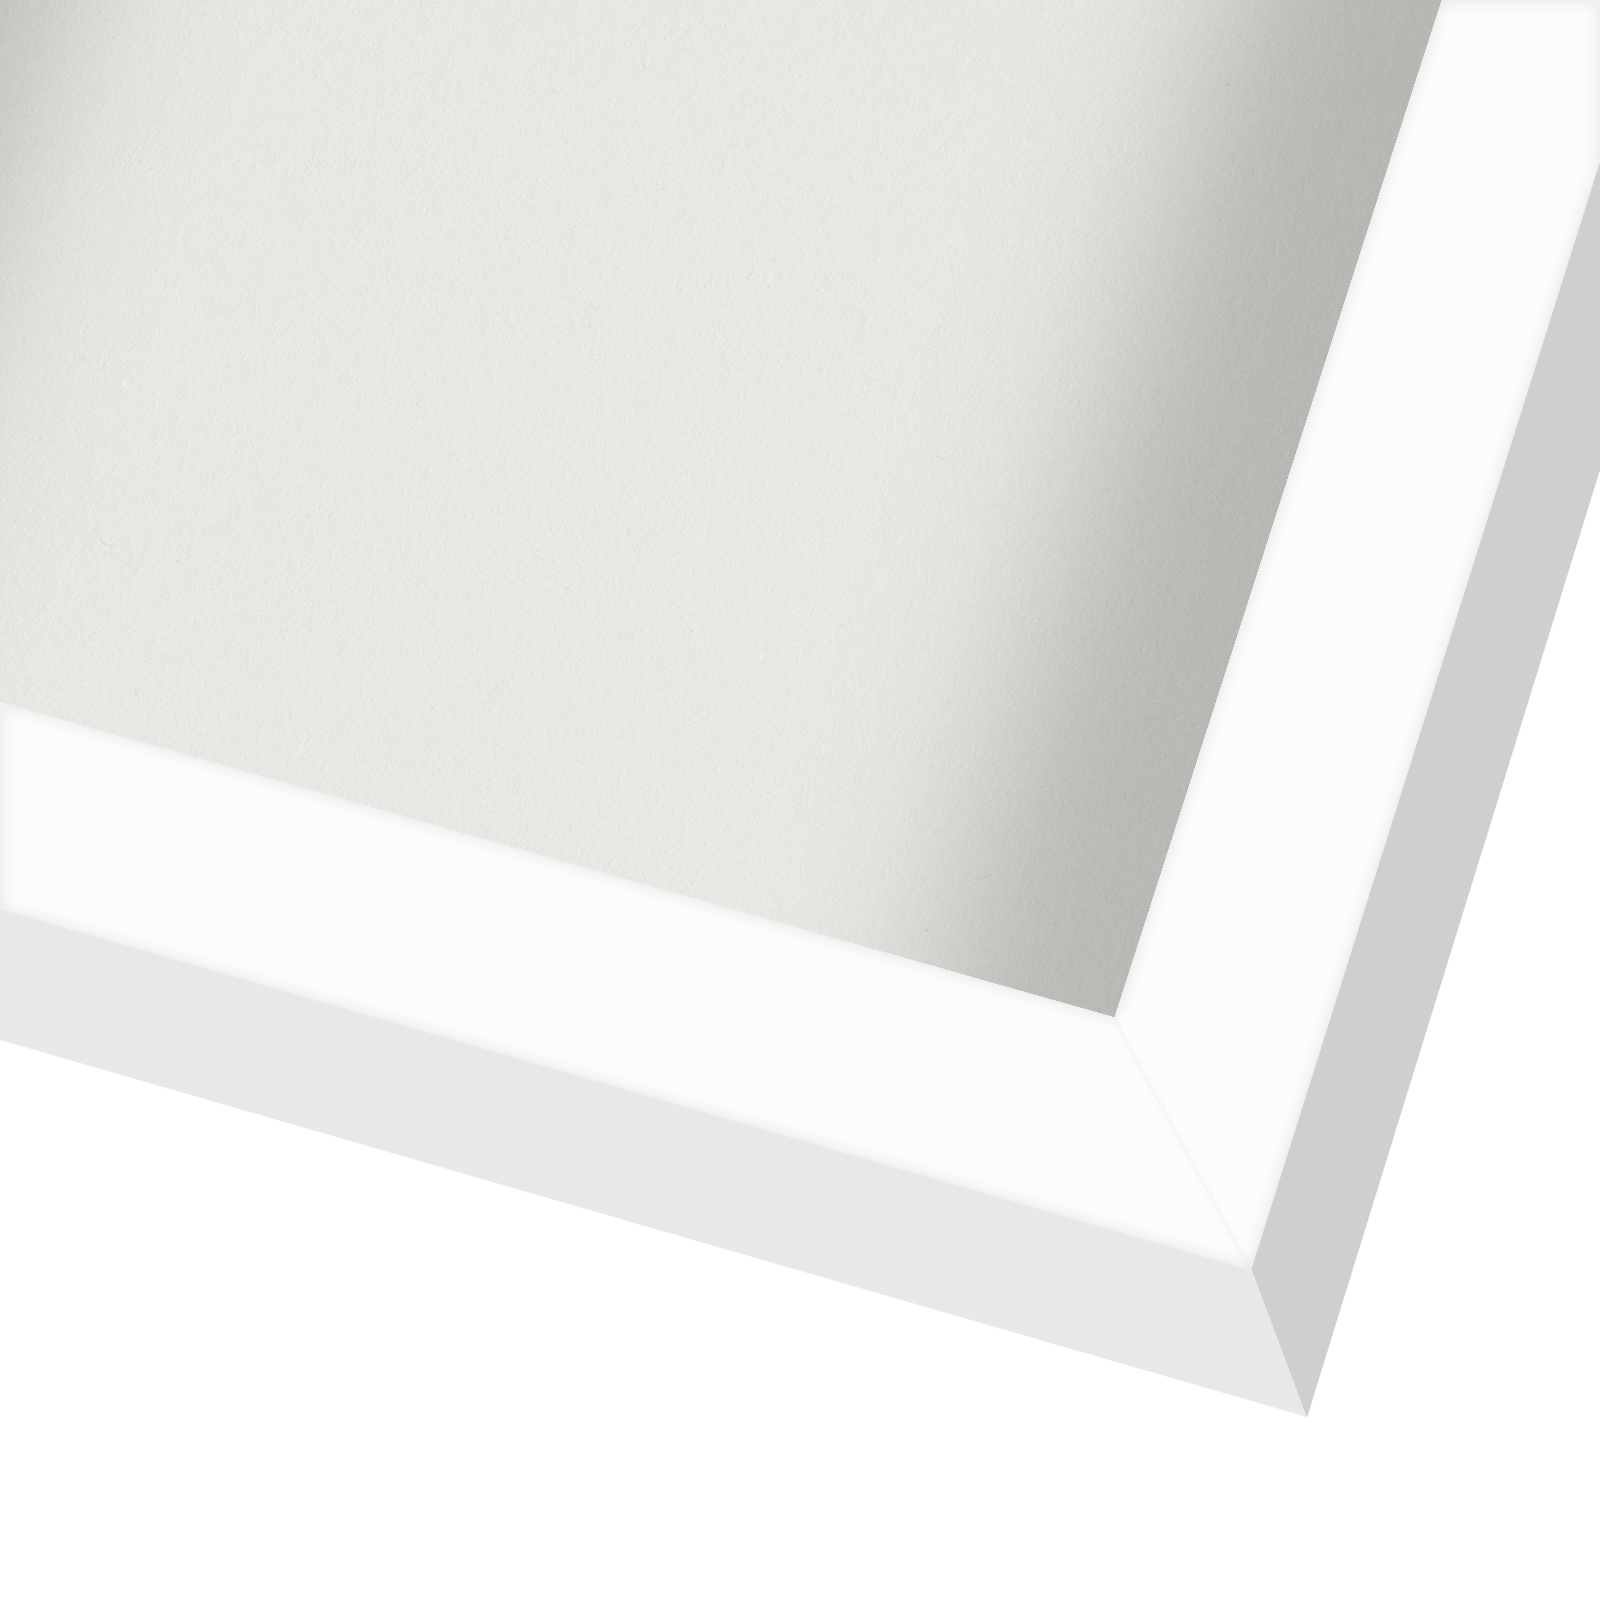 miniature 23 - Americanflat Shadow Box Frame with Soft Linen Back - Variety of Sizes